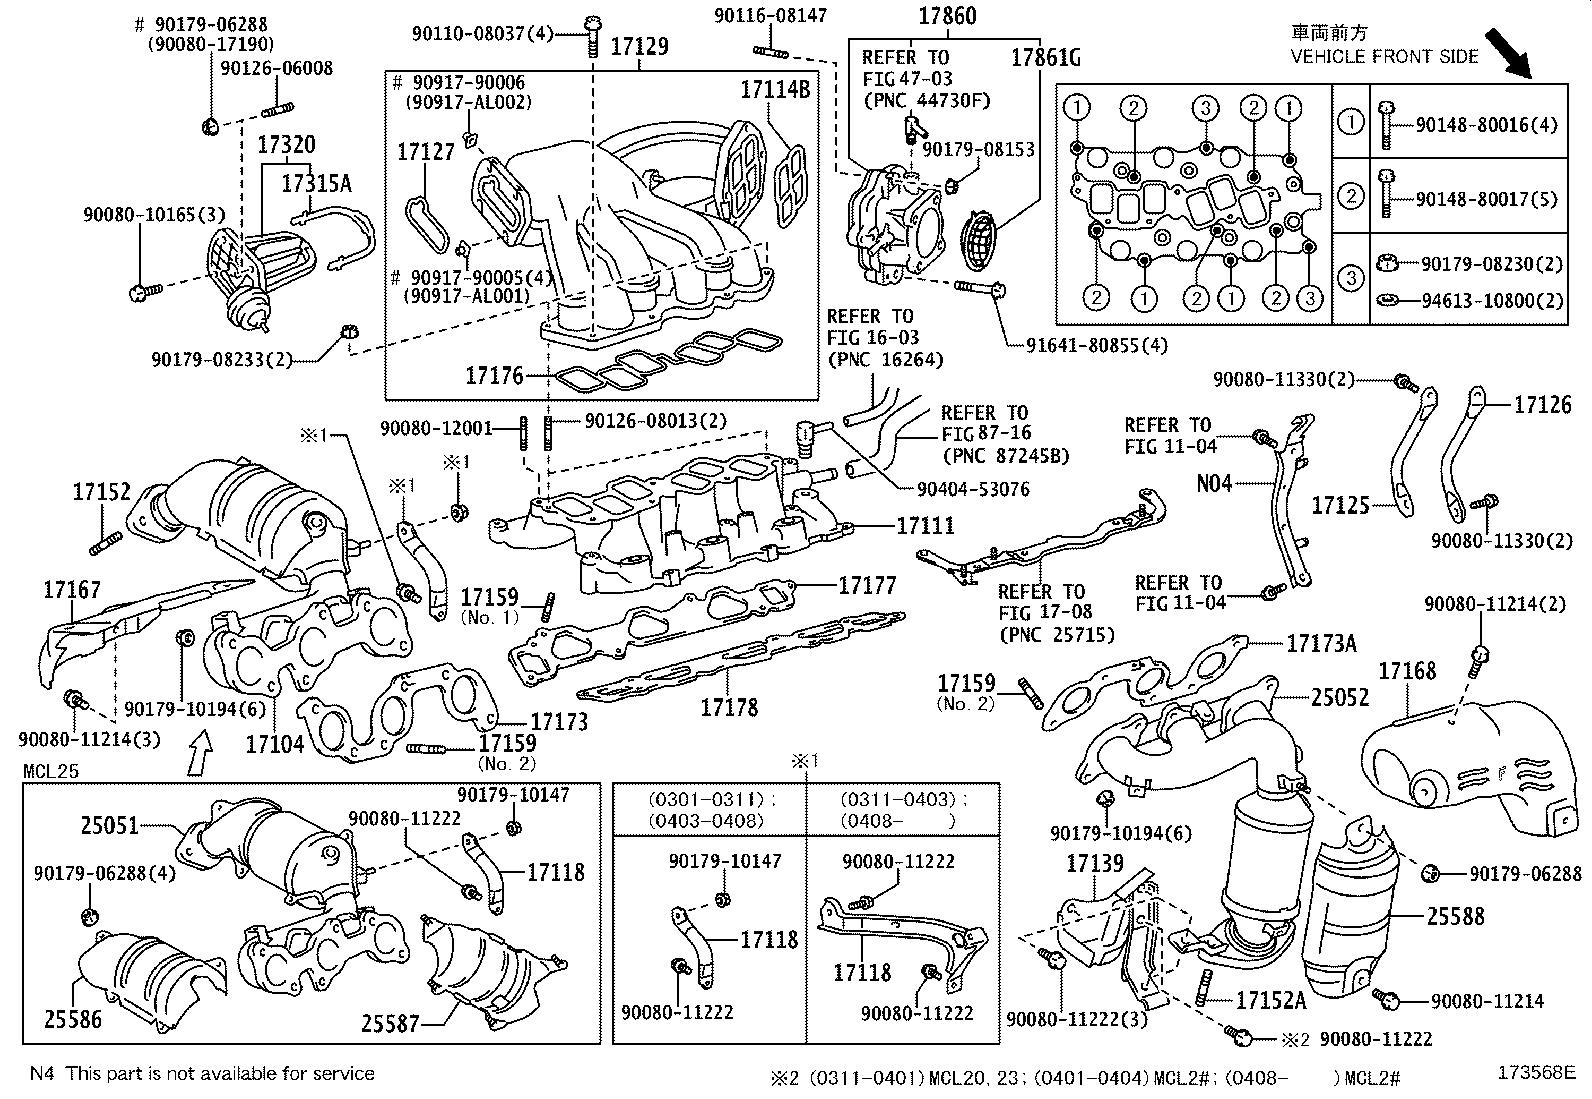 Toyota Sienna Tank Assembly Intake Air Surge Exhaust